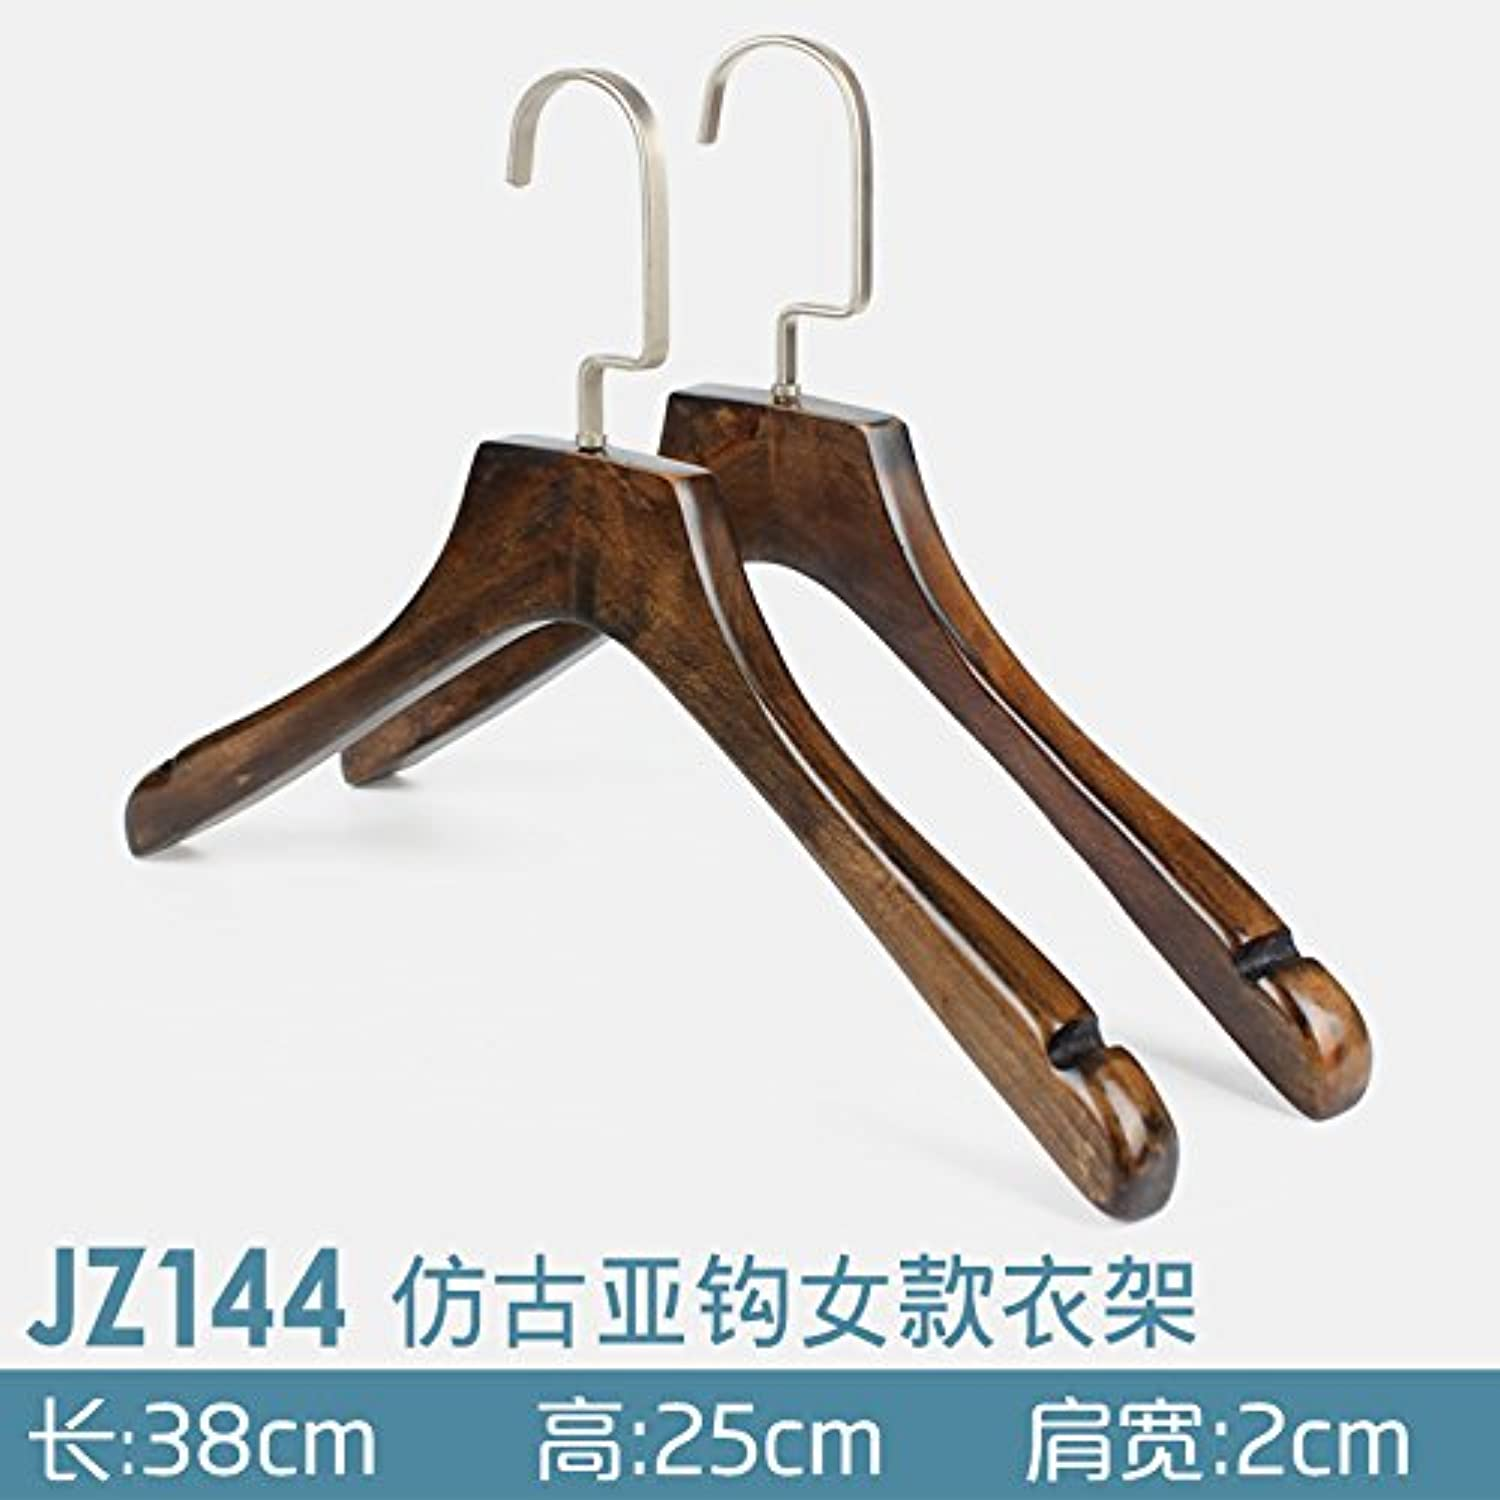 U-emember Home Suits Non-Slip Wooden Coat Hangers Wooden Poles Adult Clothing And Non-Marking Solid Wood Hangers, Coat Hanger ,30,Jz144-3824 Thick 2.4 Ladies